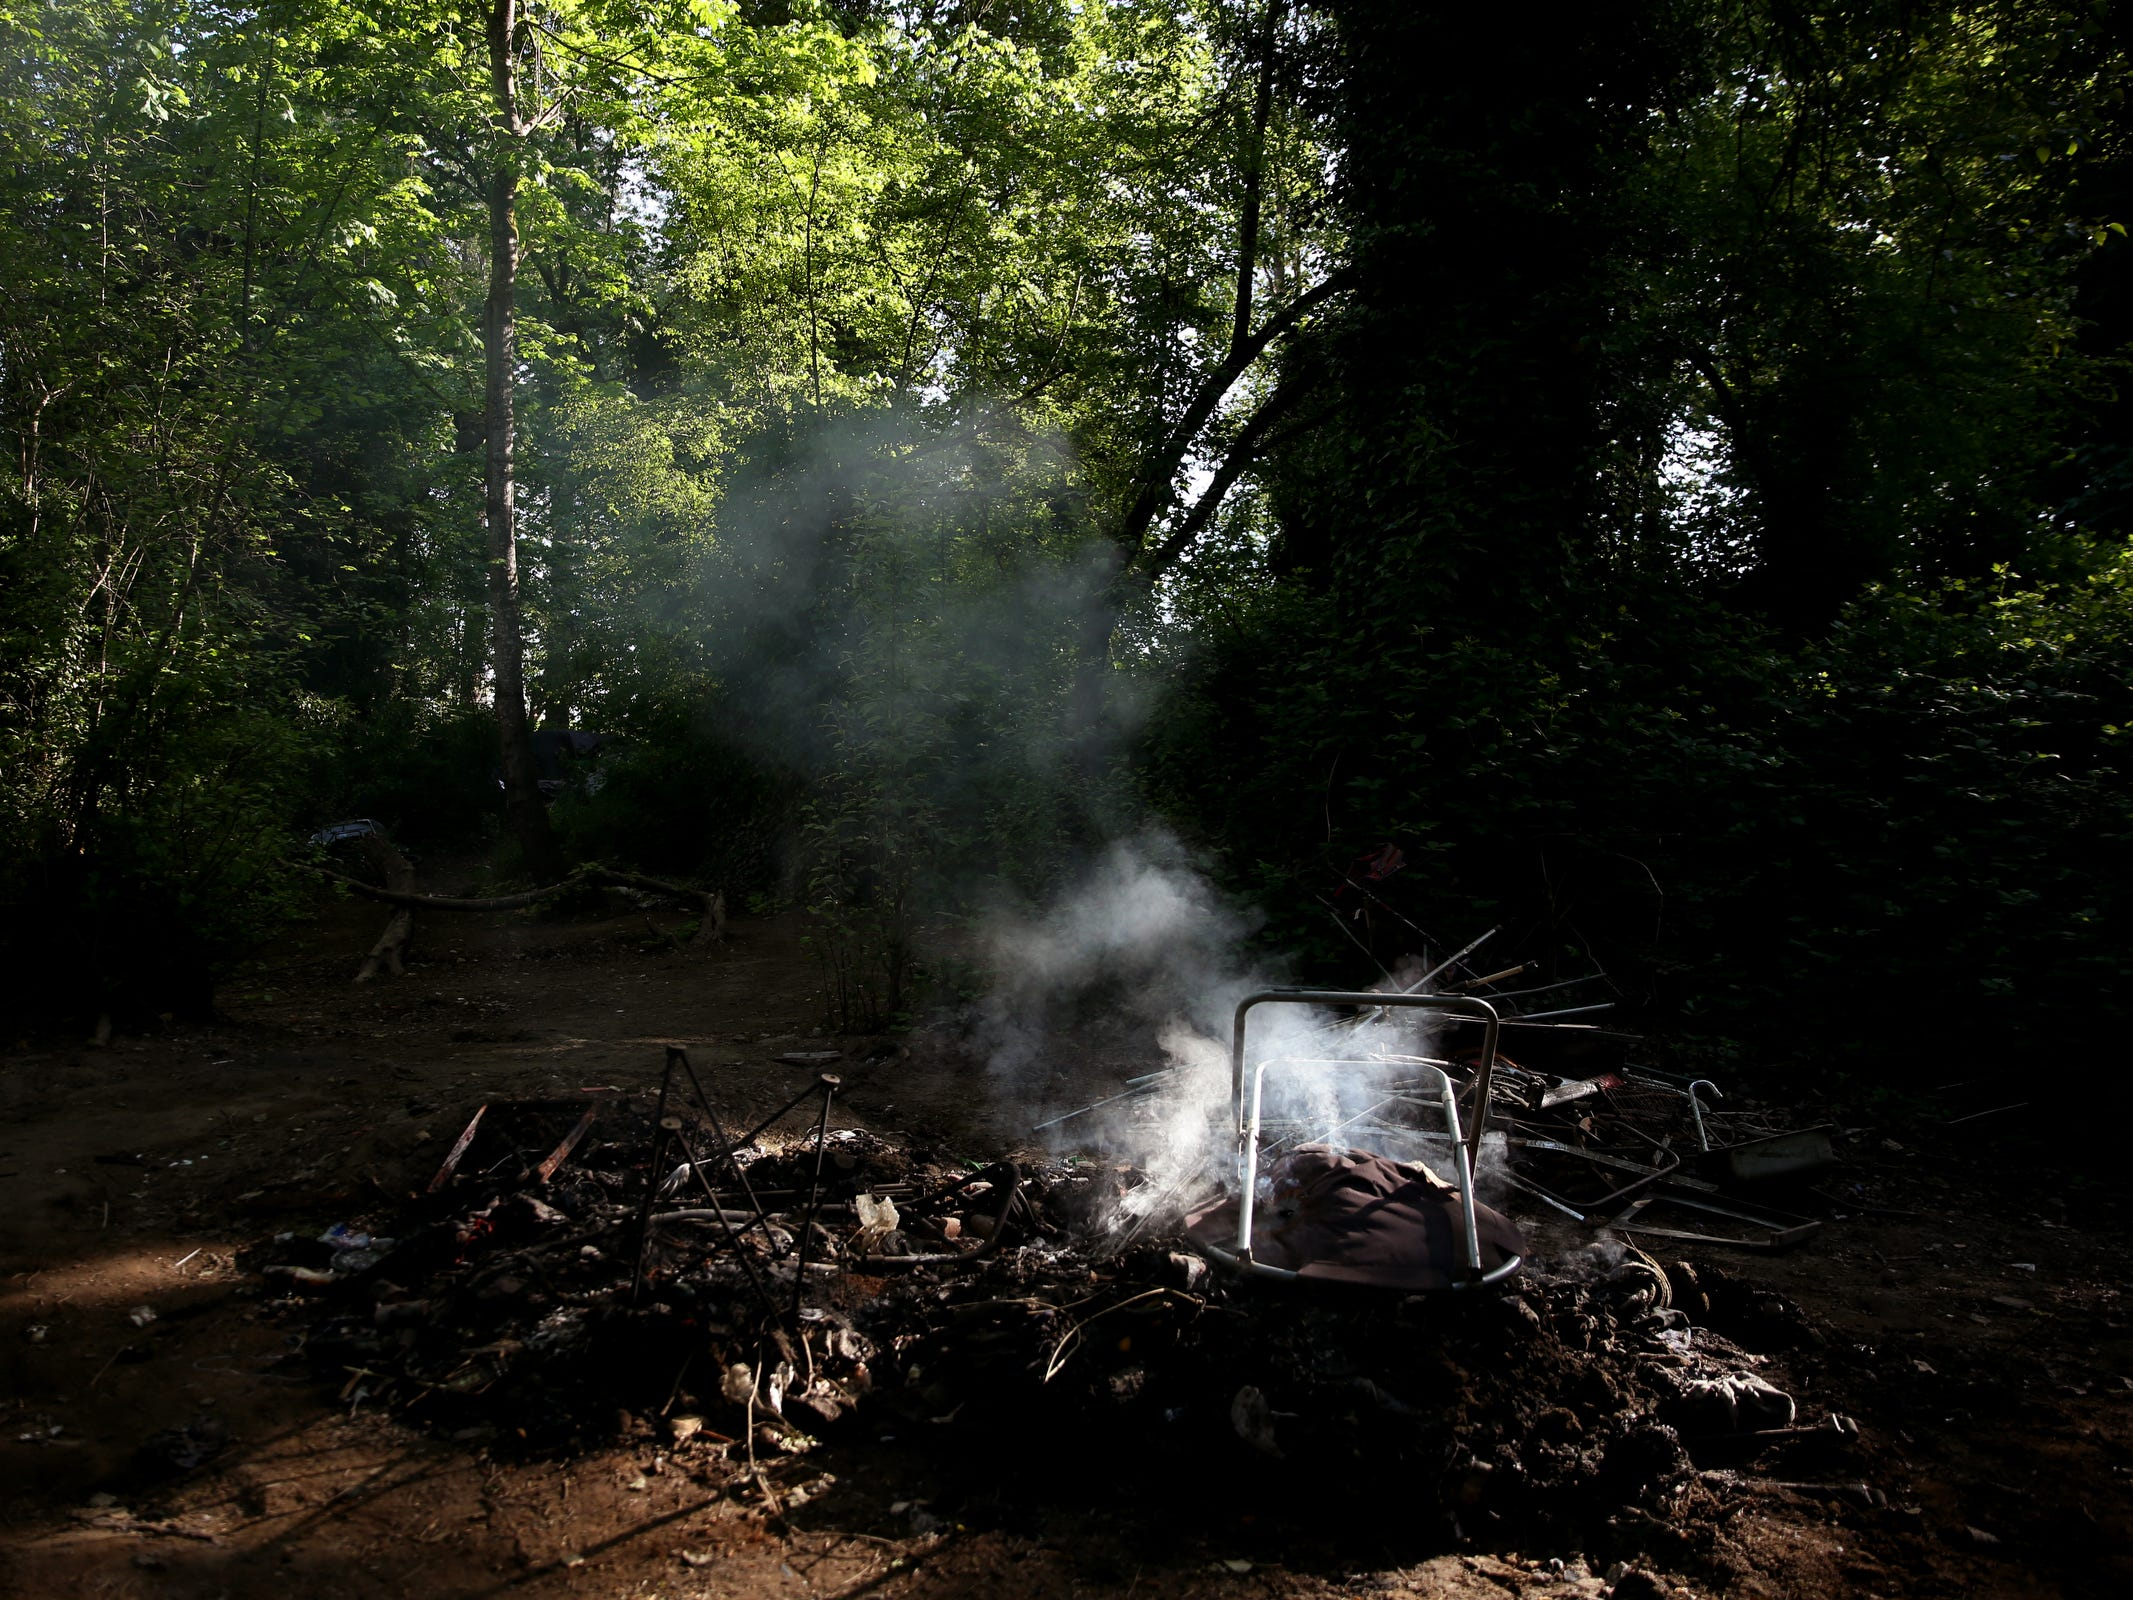 A fire smokes in a homeless camp near Wallace Marine Park in West Salem on May 7, 2019. Signs were posted throughout the camp recently stating personal property must be removed or it will be taken by the landowner and its designated agent starting May 7. An eviction can't be enforced until a court approves it.